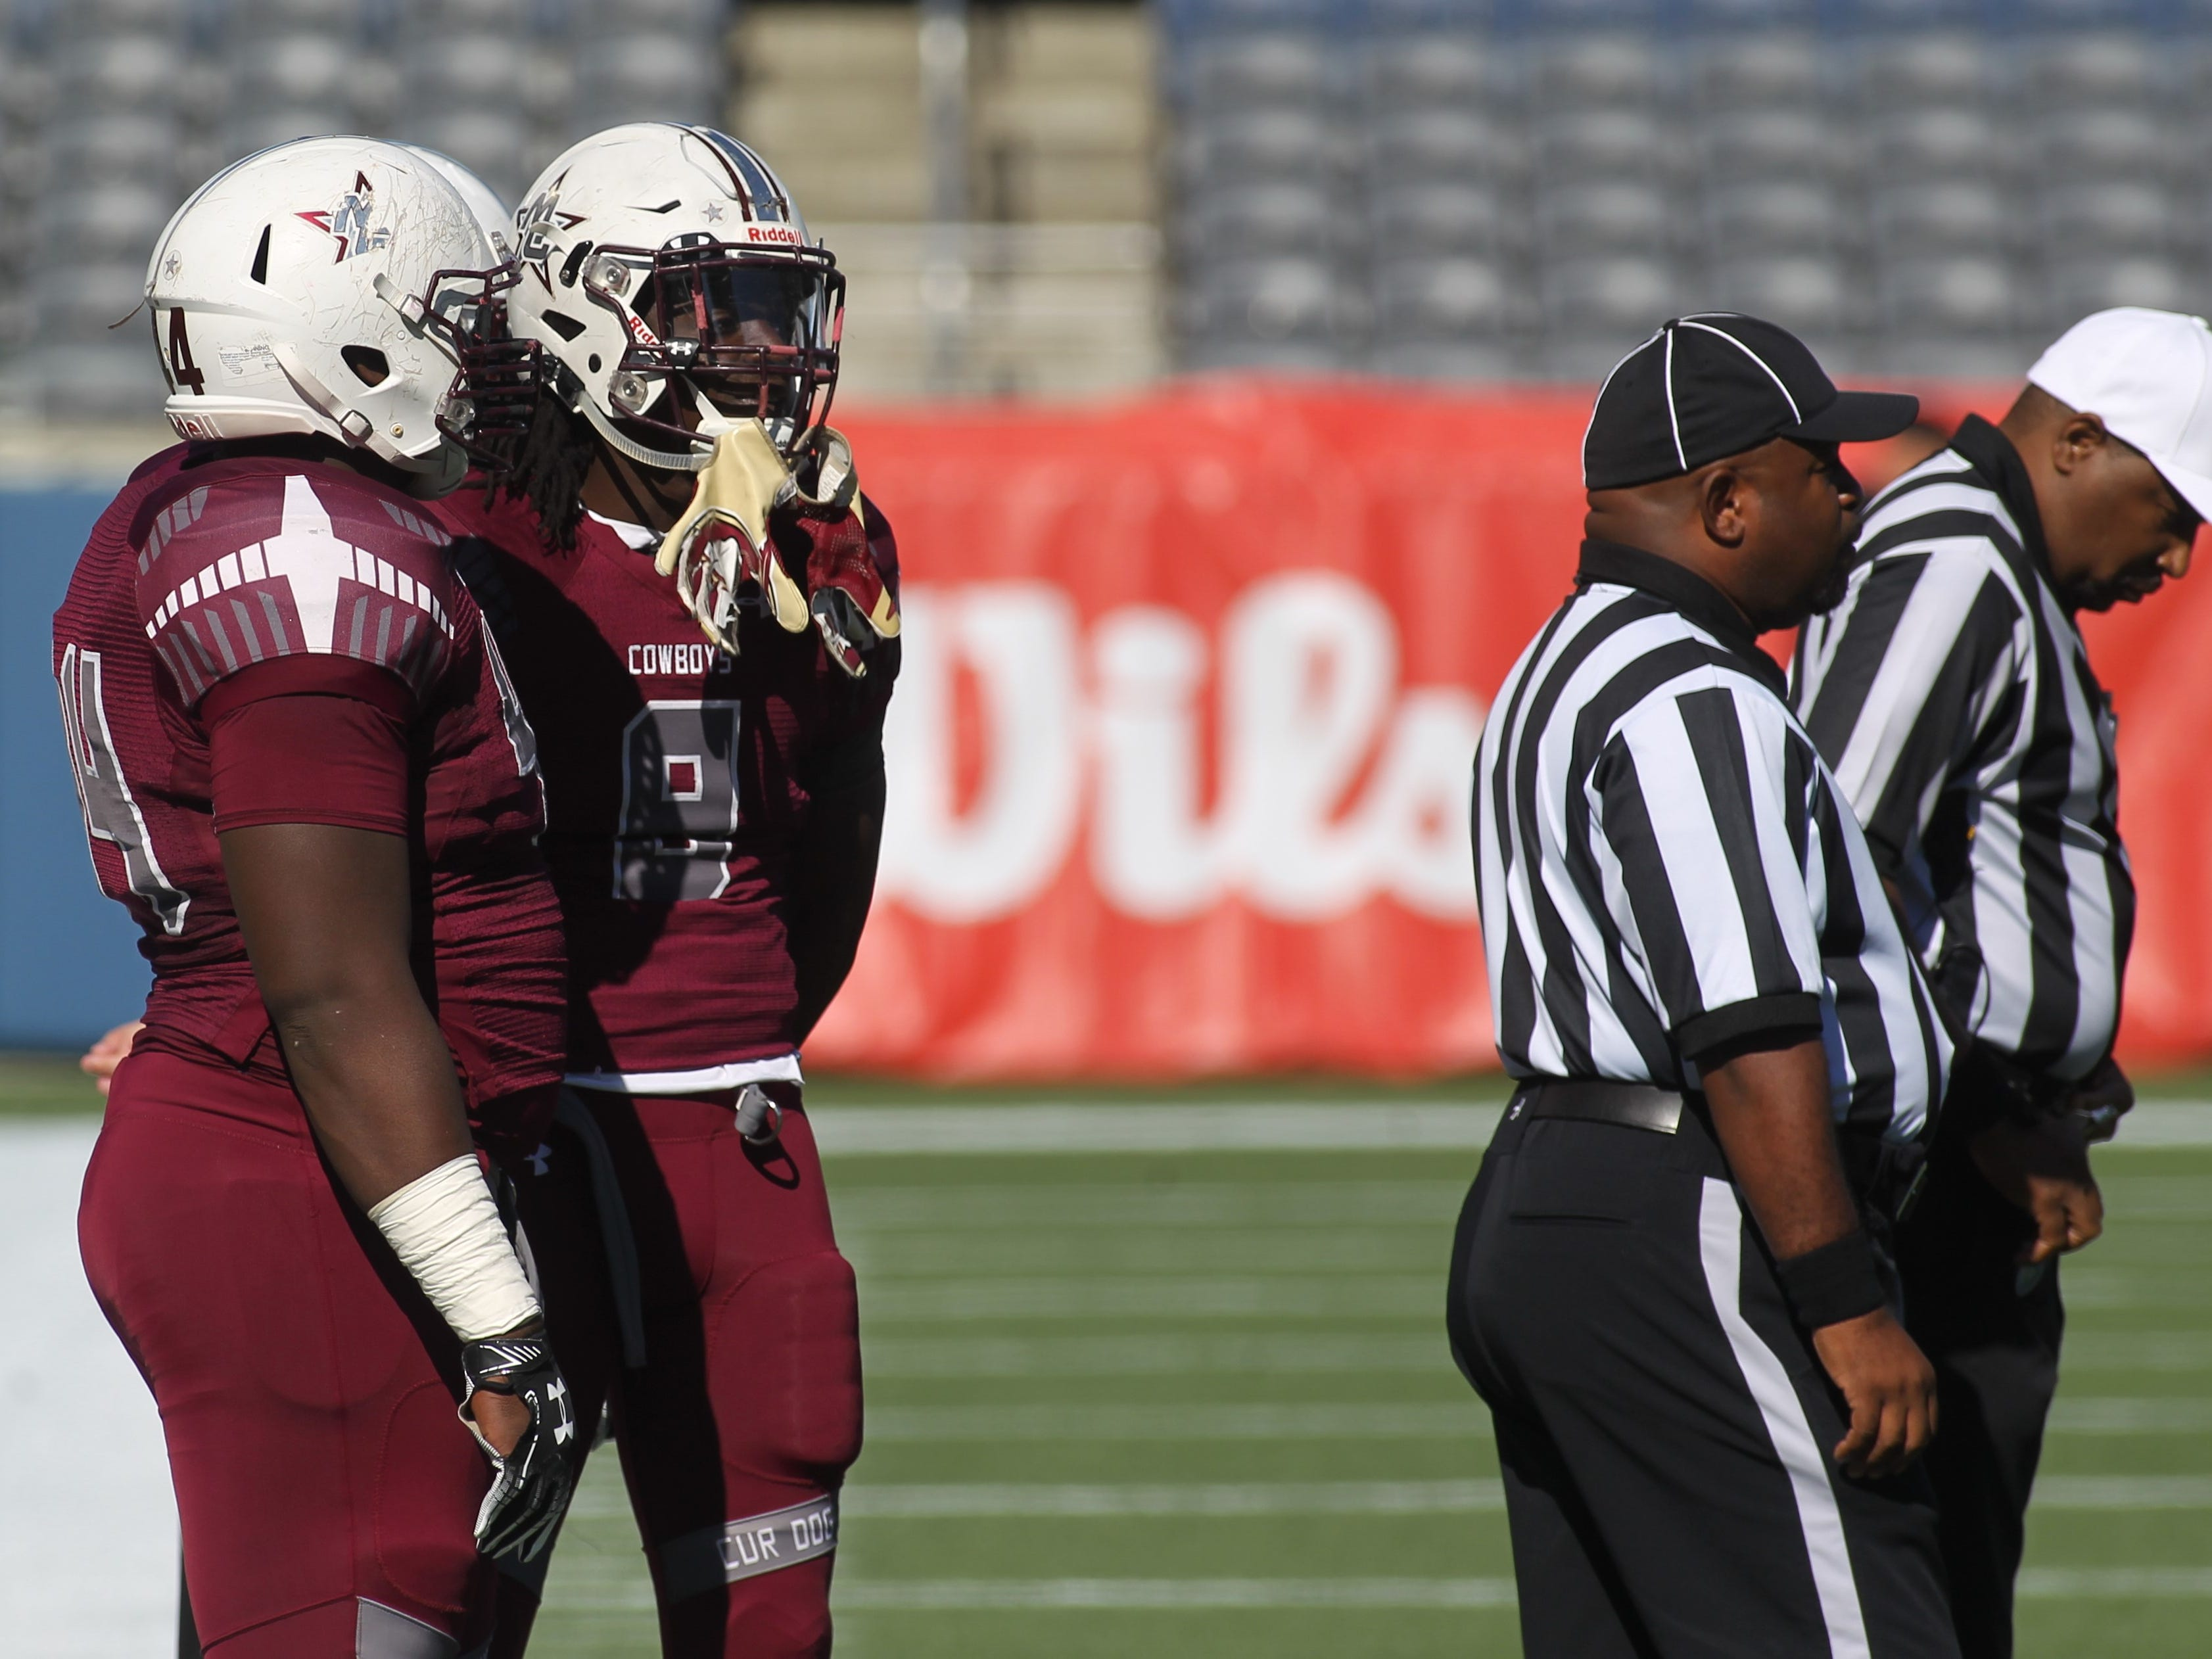 Madison County captains Terray Jones (44) and Travis Jay (8) wait for the coin toss prior to the Cowboys beating Baker 48-6 in a Class 1A state championship game at Orlando's Camping World Stadium on Thursday, Dec. 6, 2018.